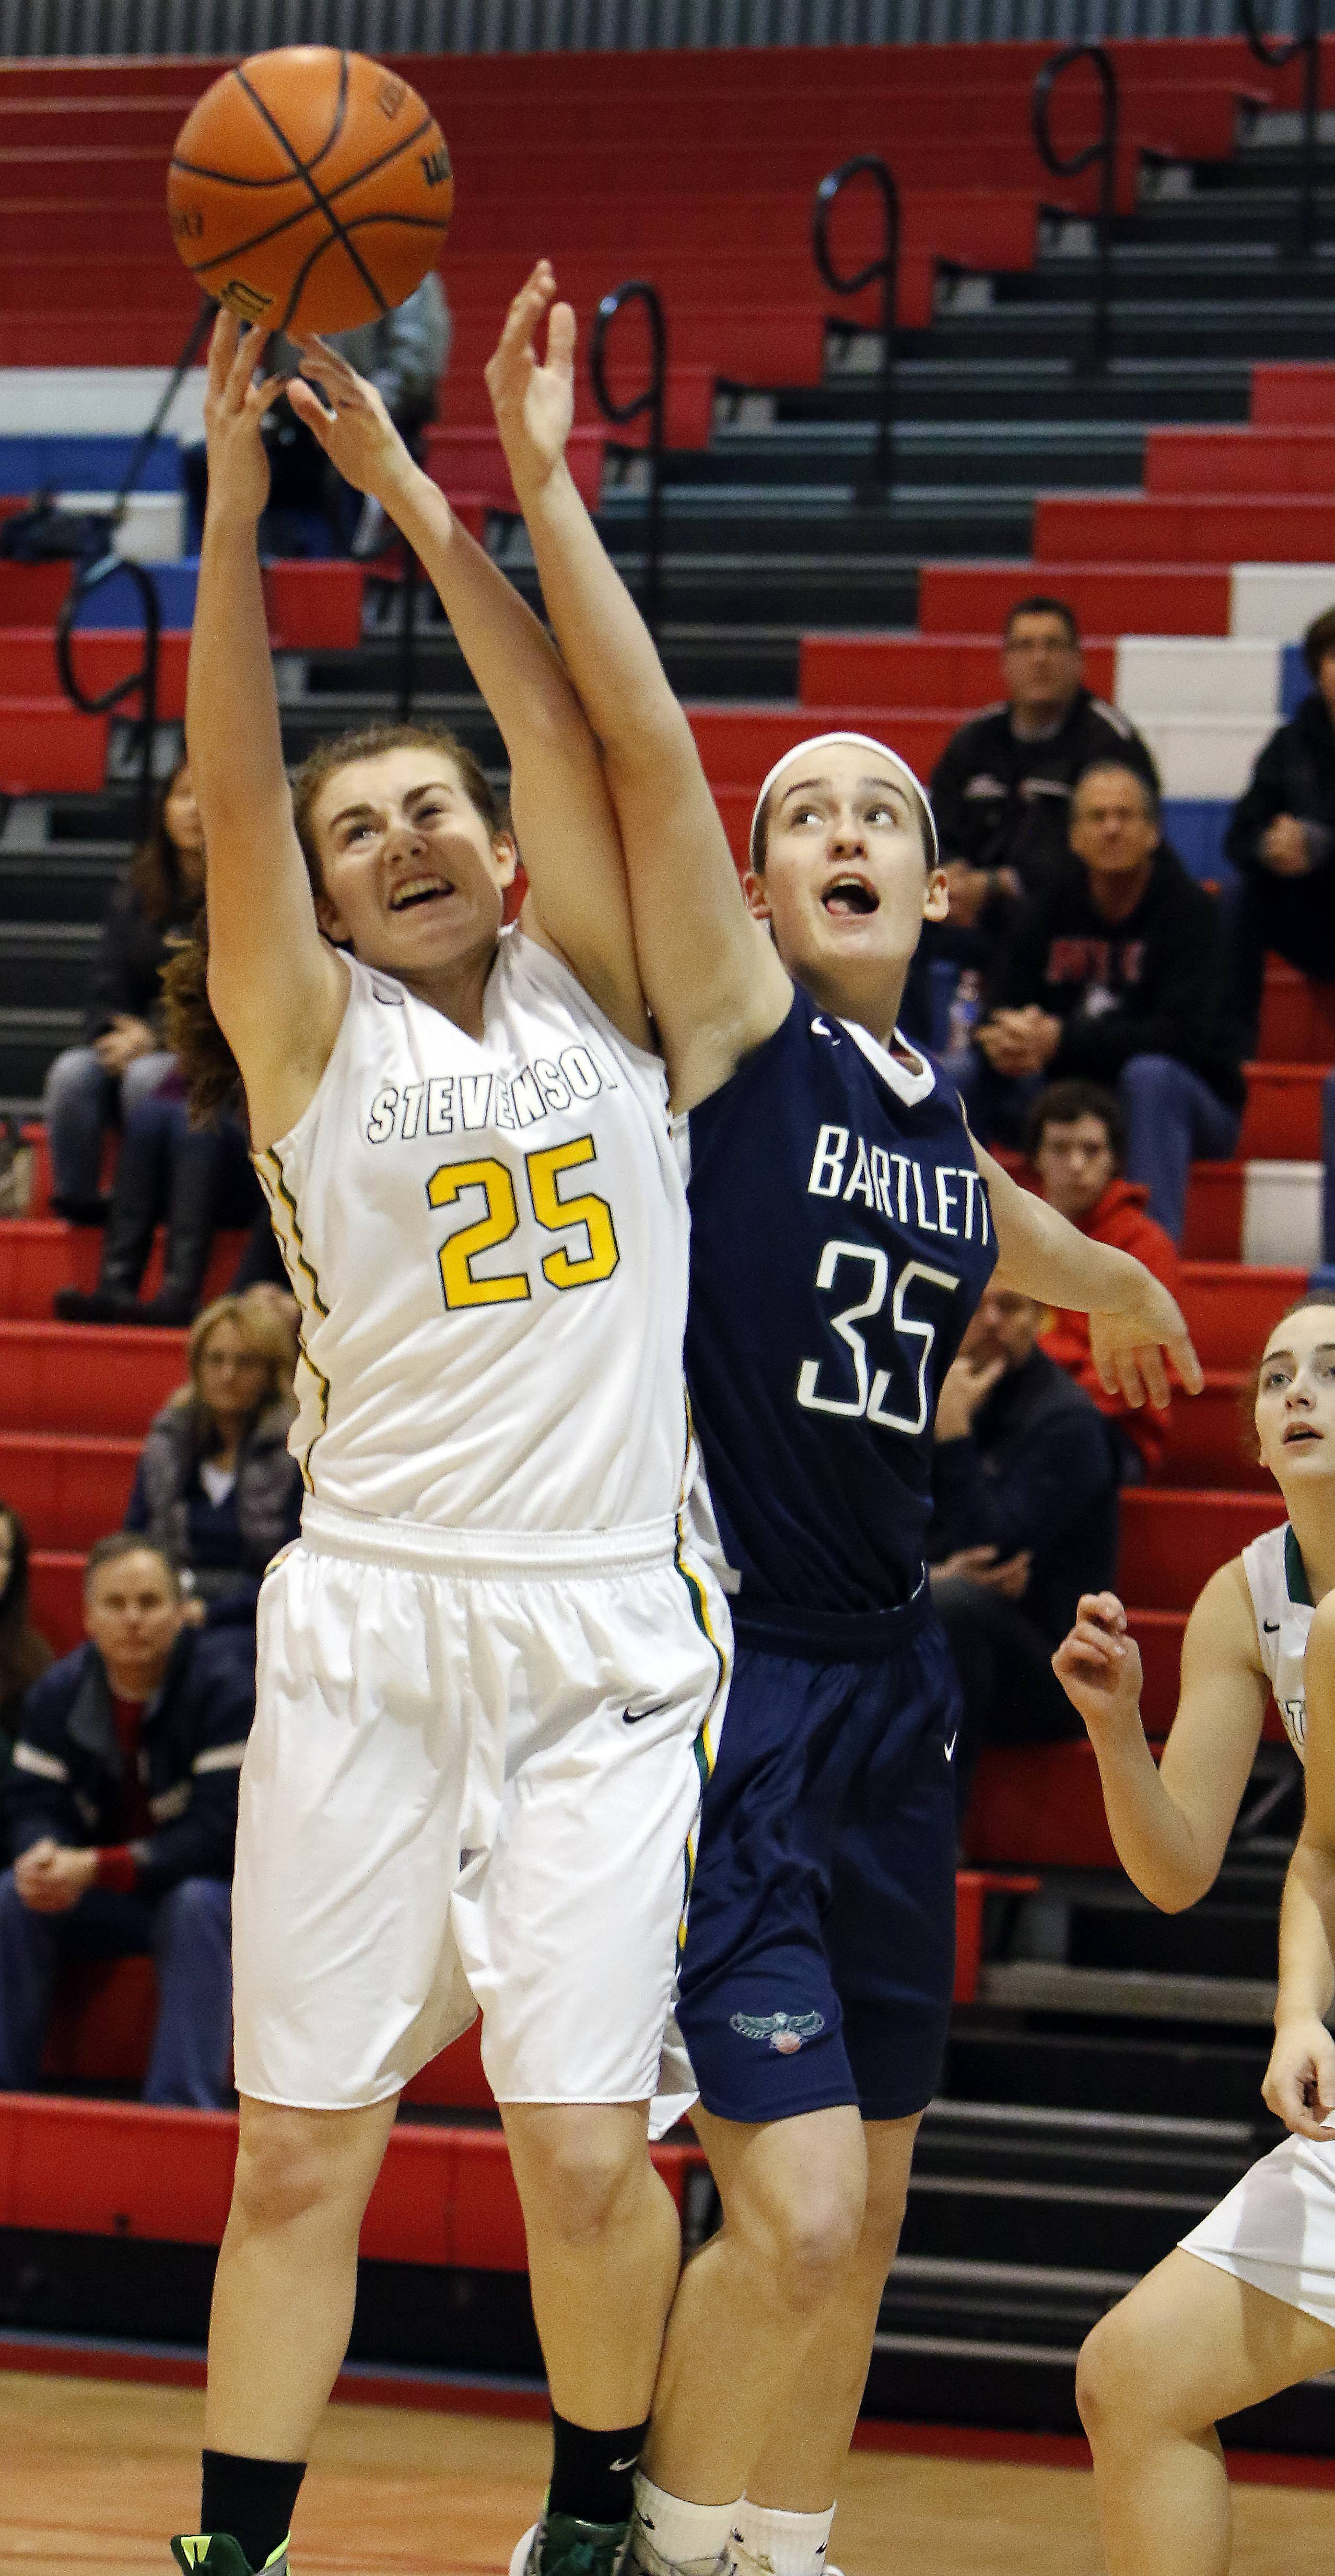 Bartlett's Kelly Harris battles Stevenson's Ashley Richardson for a rebound Saturday at Dundee-Crown.